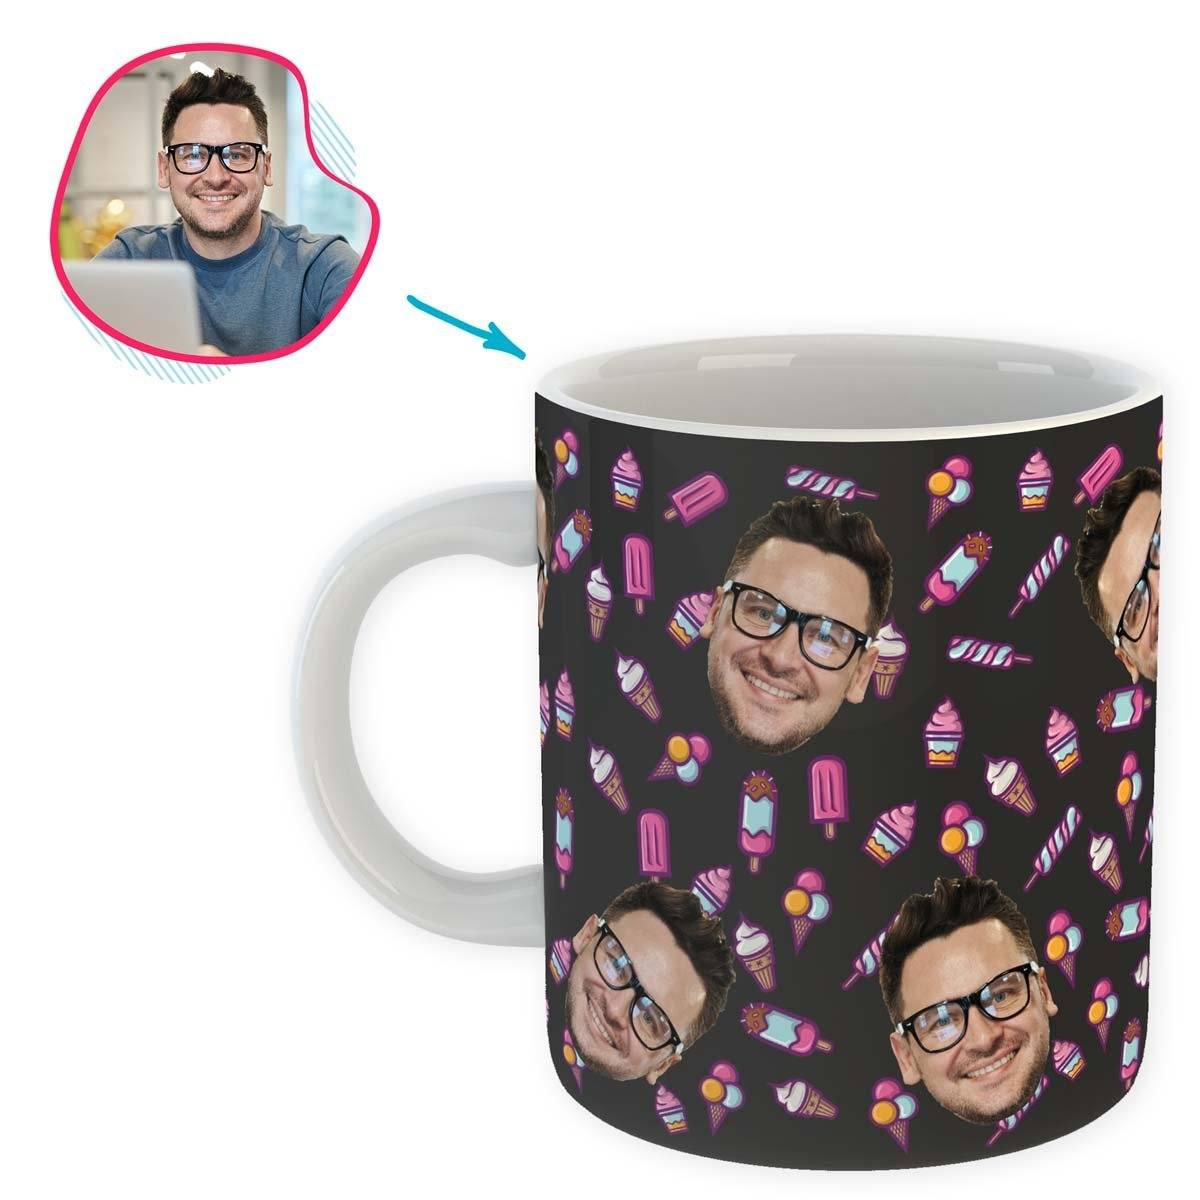 dark Candies mug personalized with photo of face printed on it